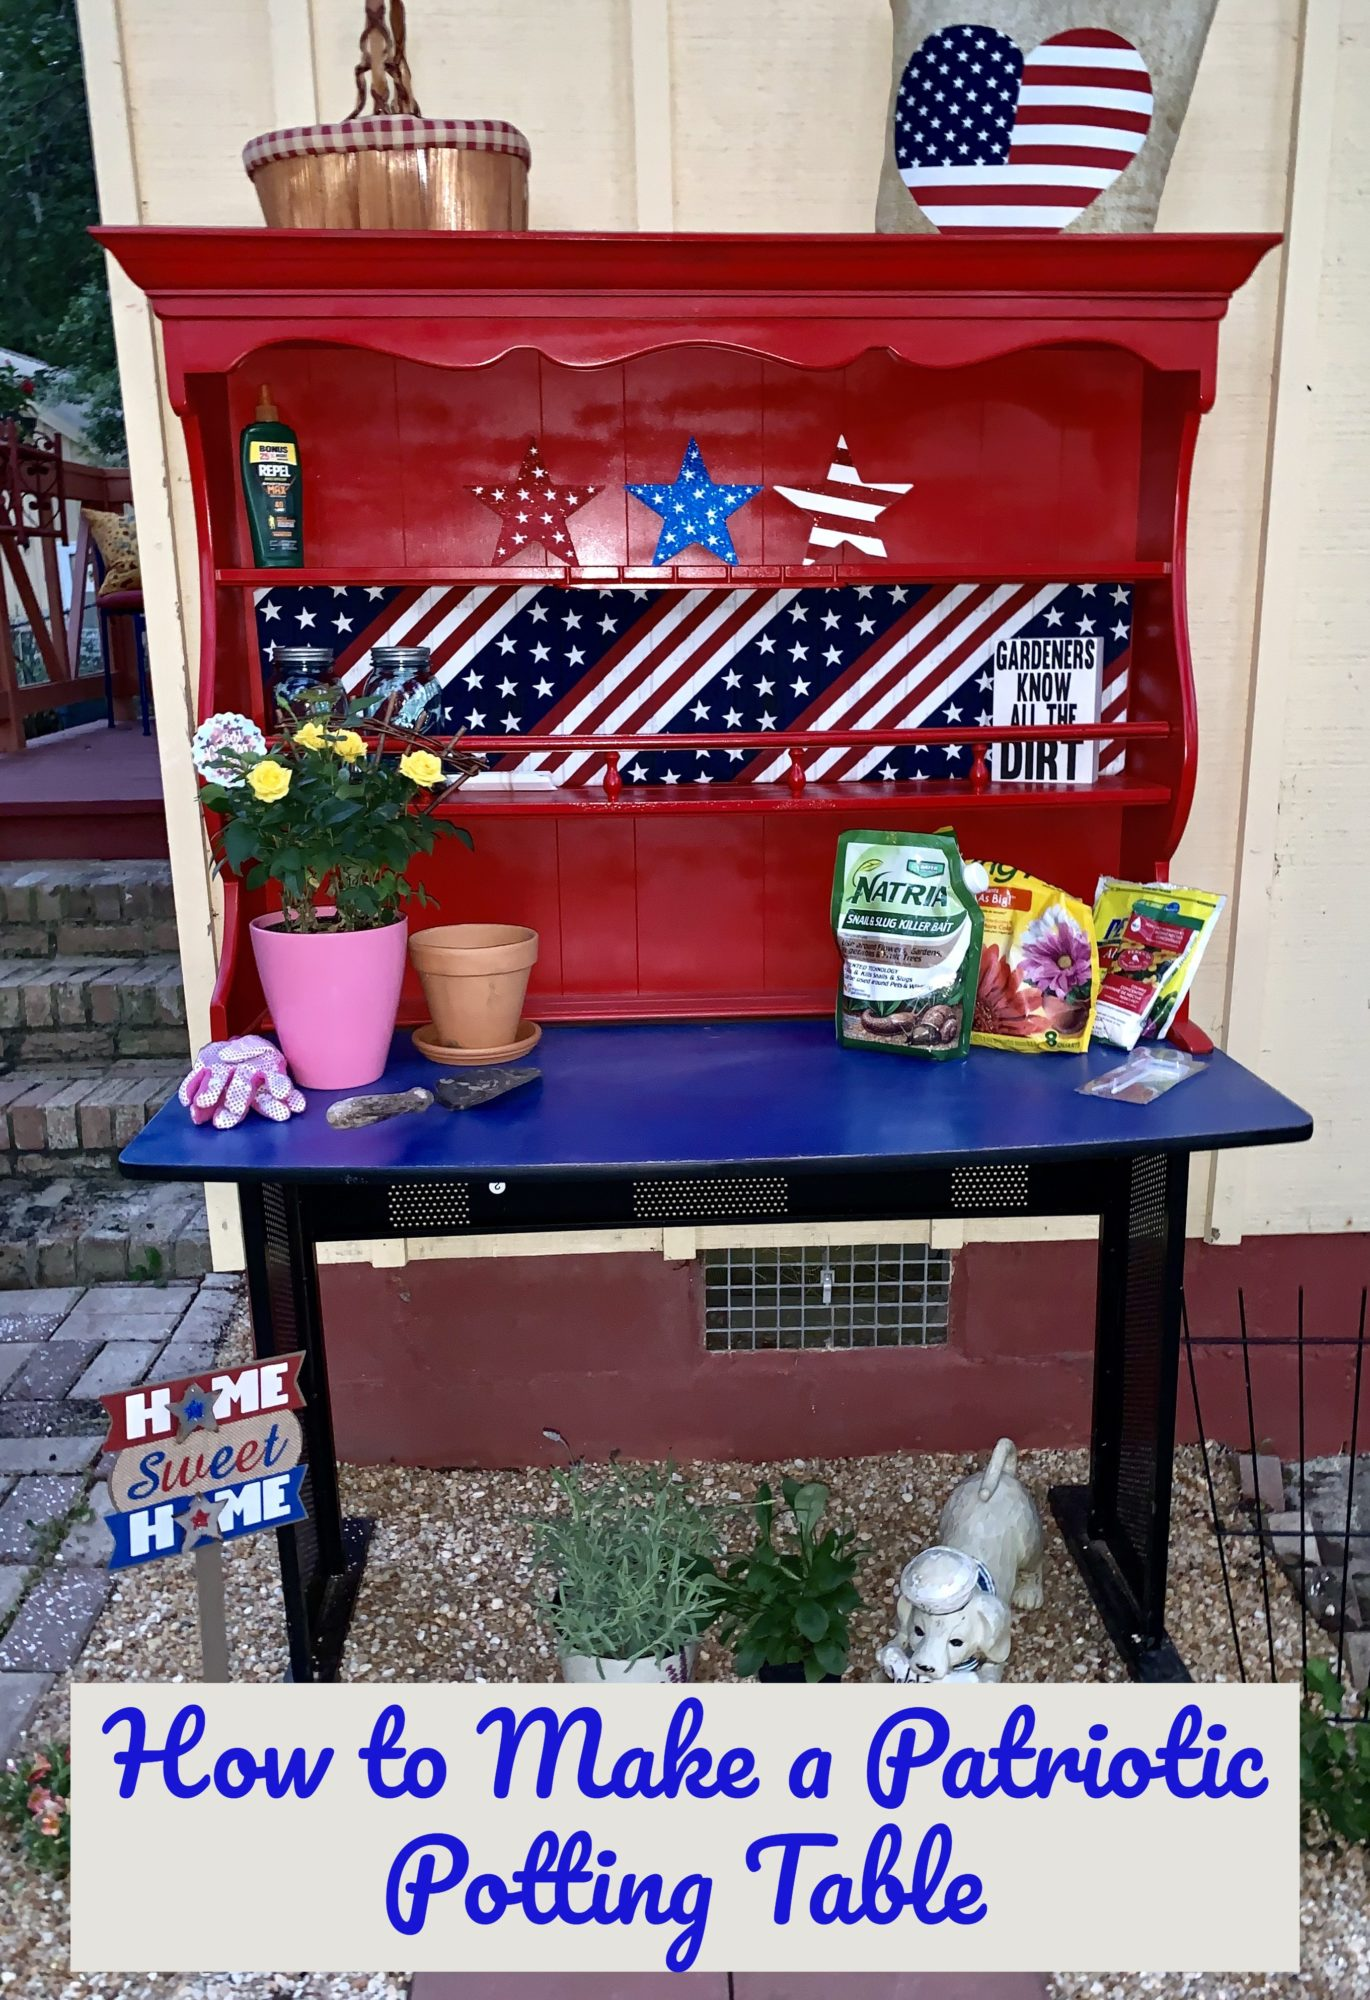 Patriotic Potting Table